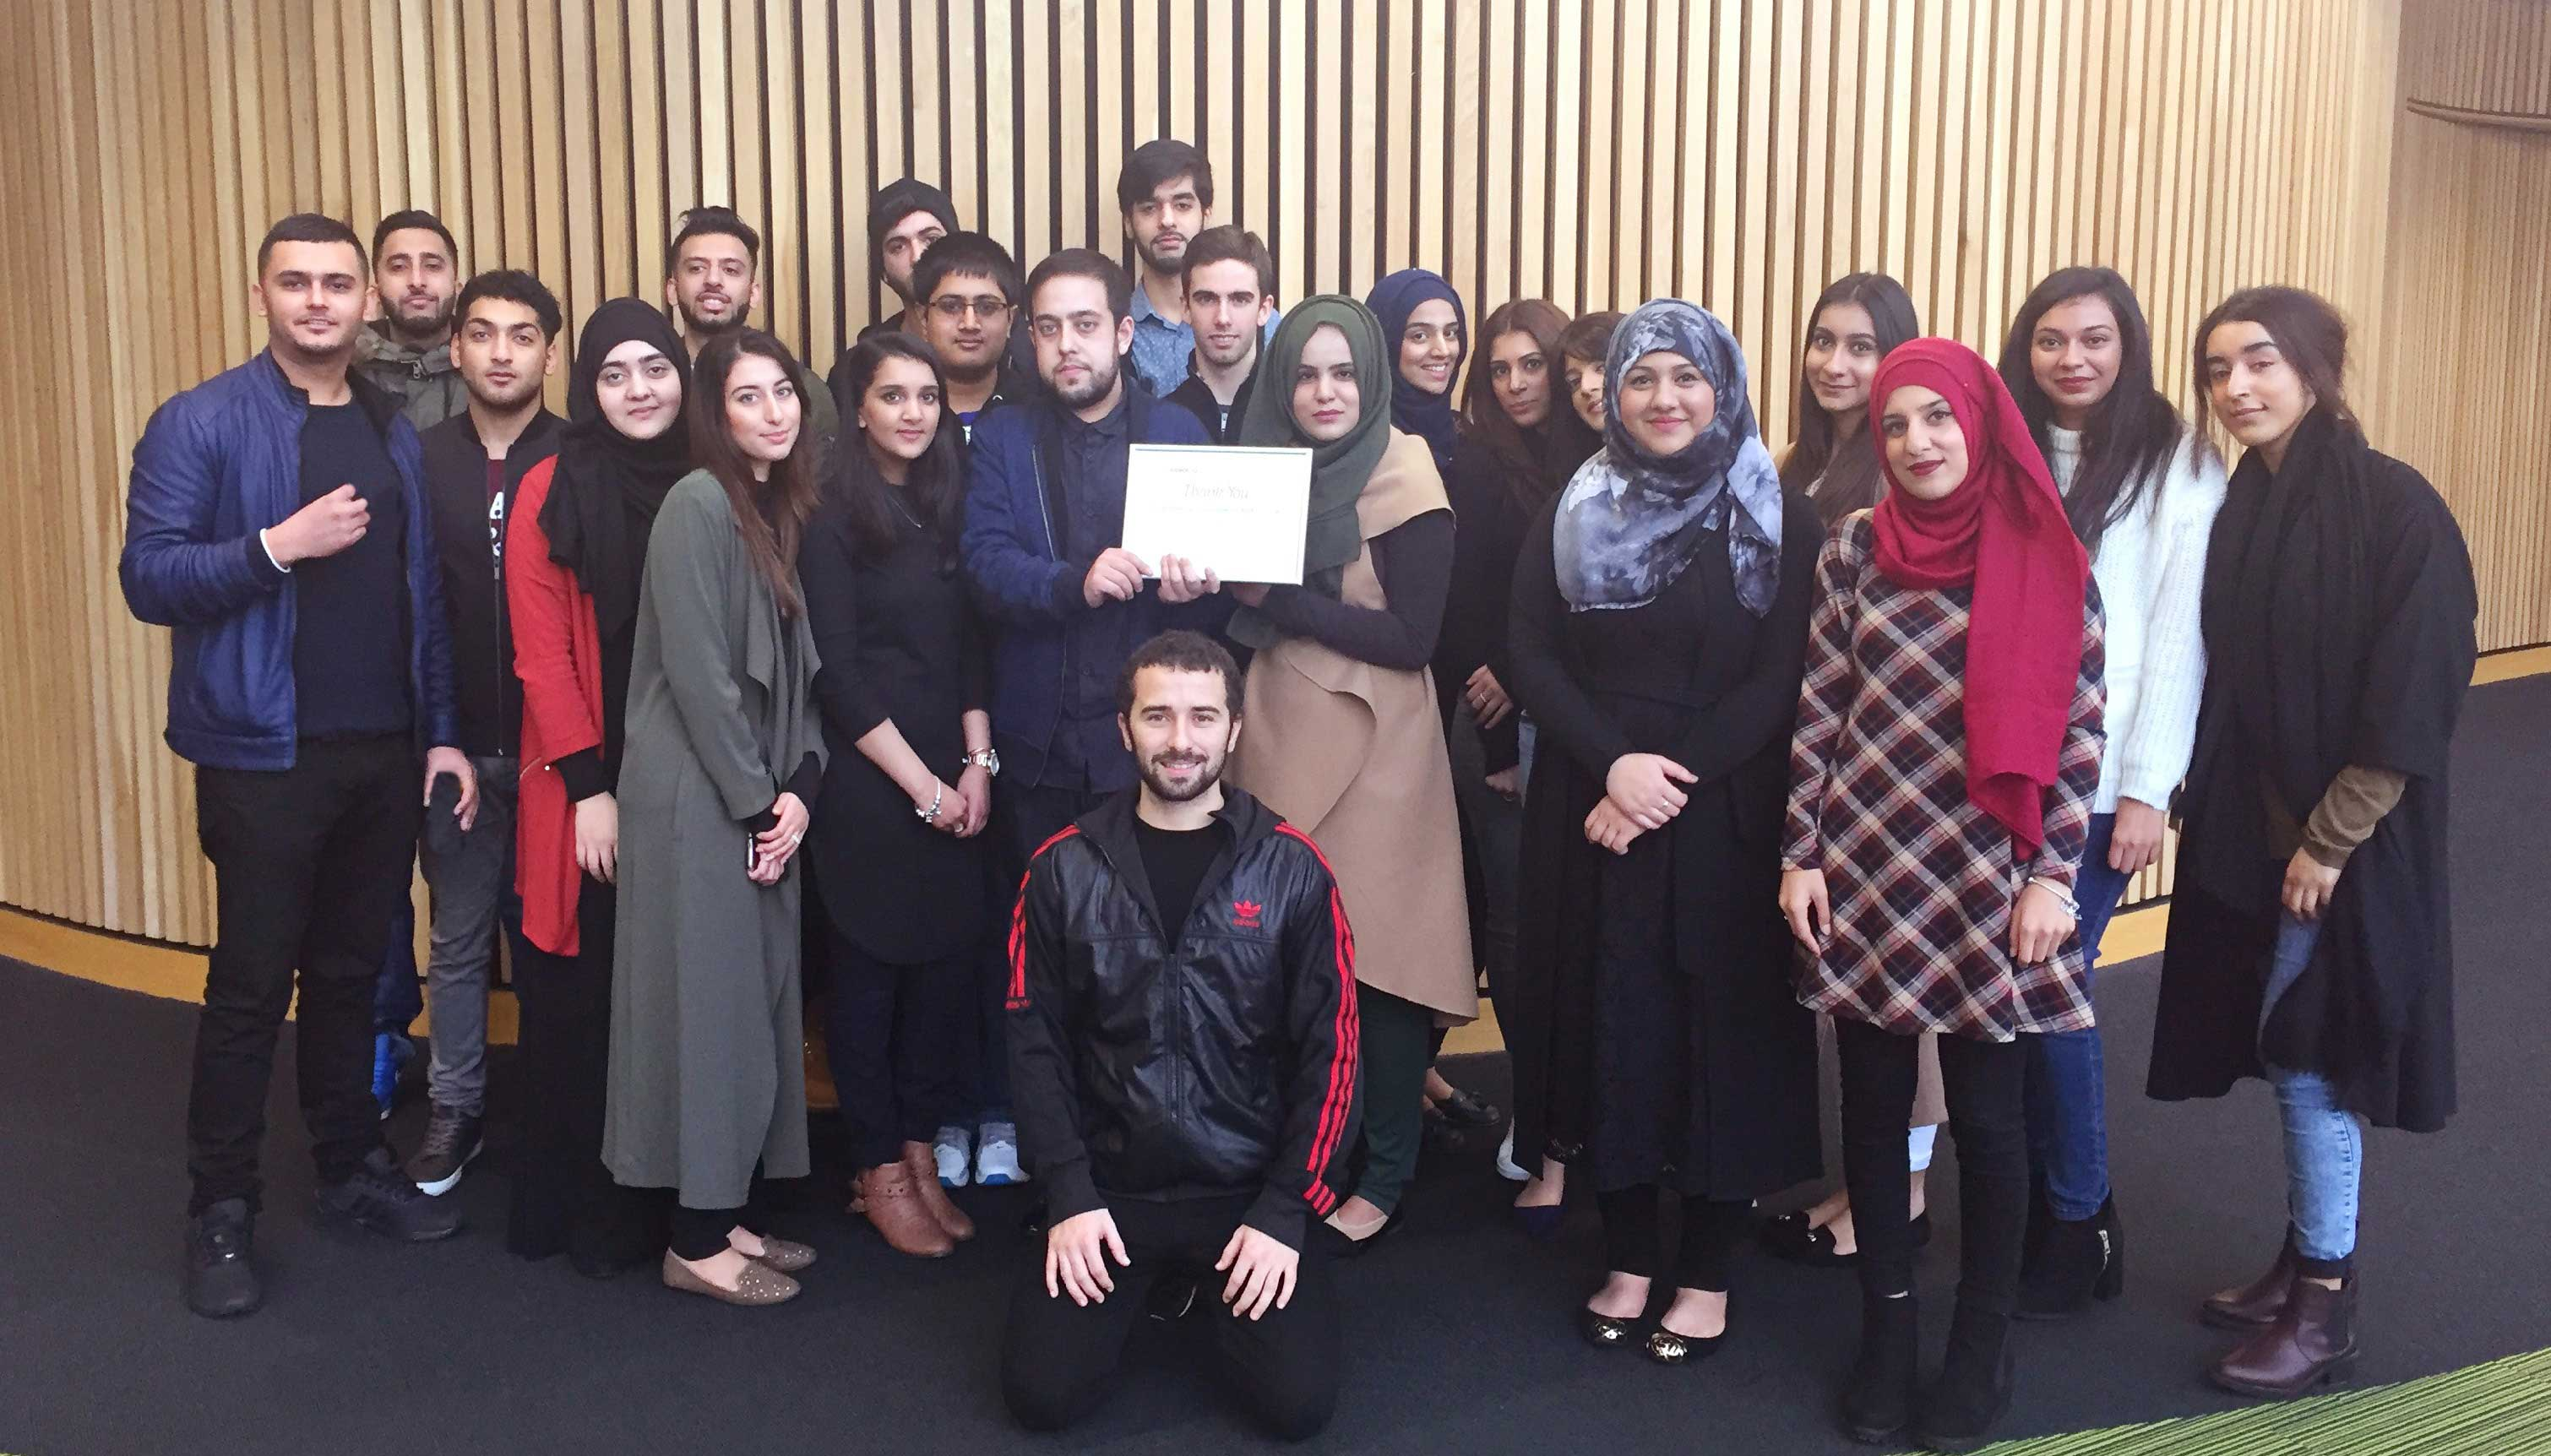 Bradford College students